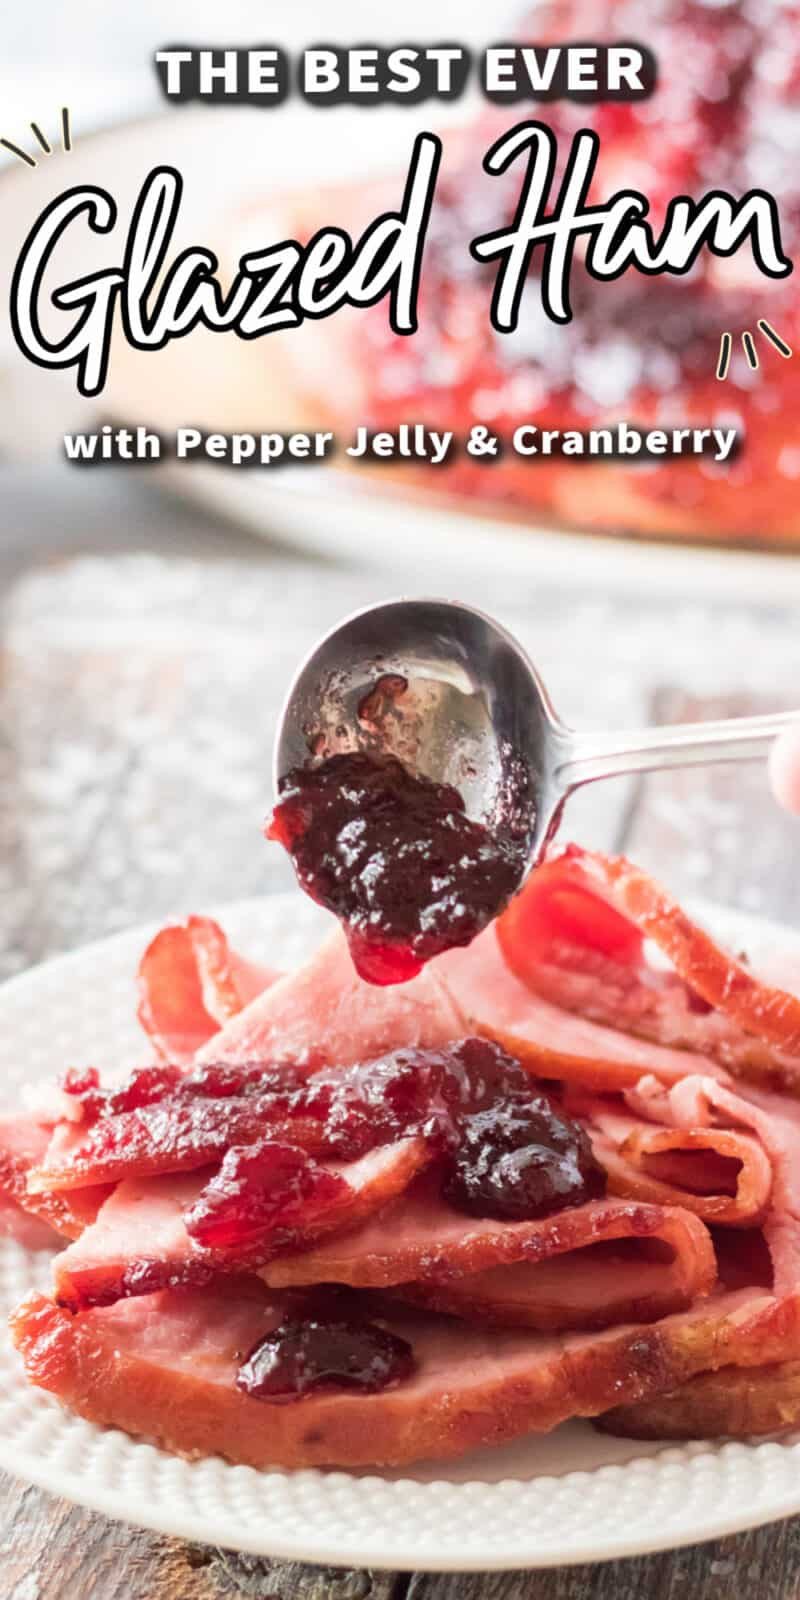 slices of ham on plate with craberry glaze sauce with text